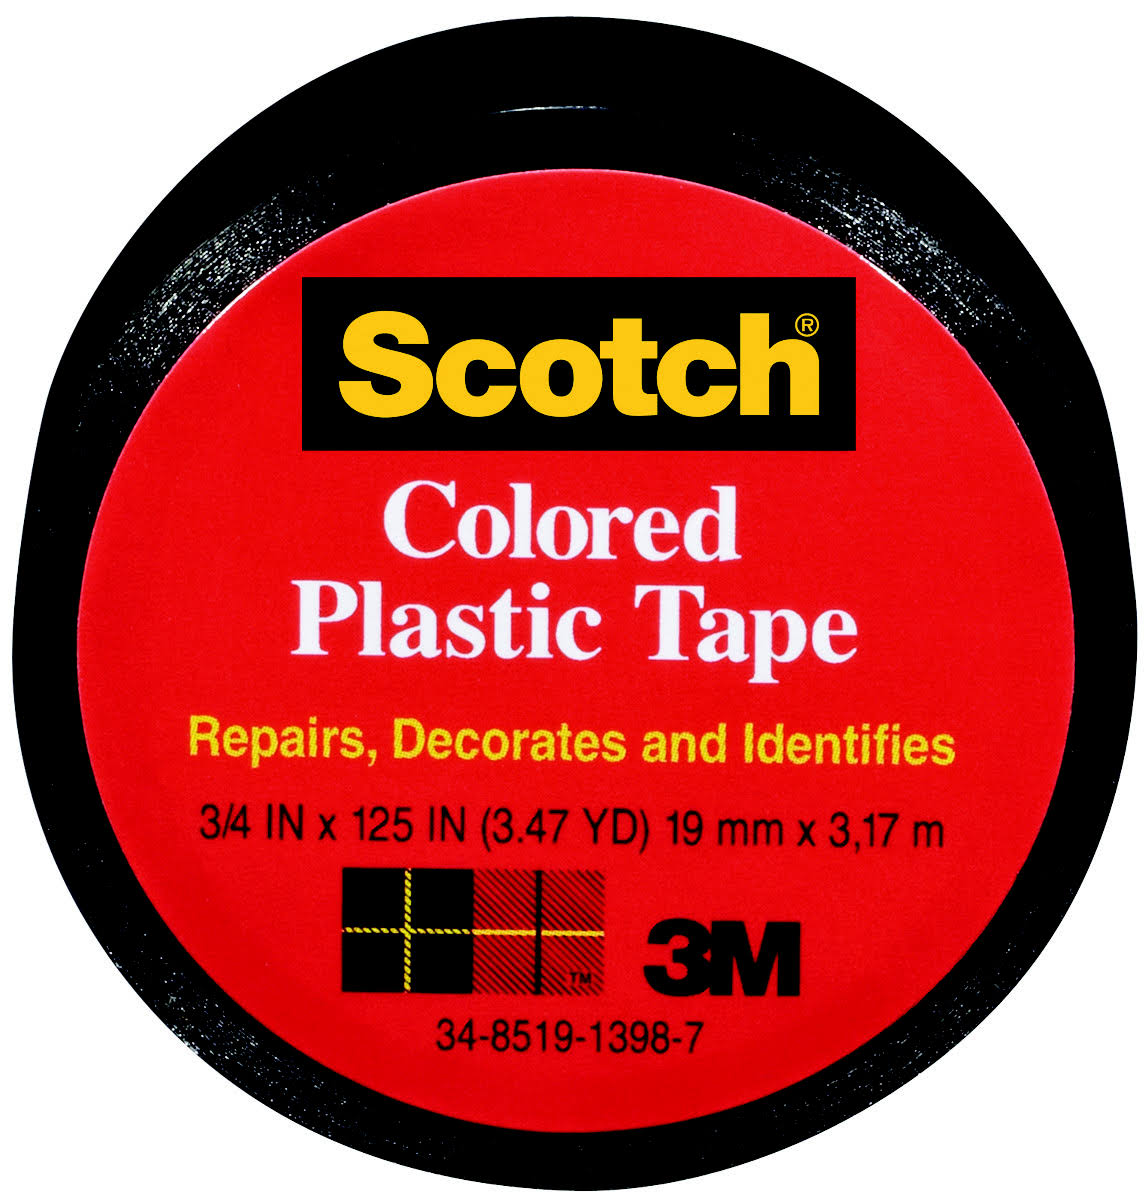 Scotch Colored Plastic Tape - Black